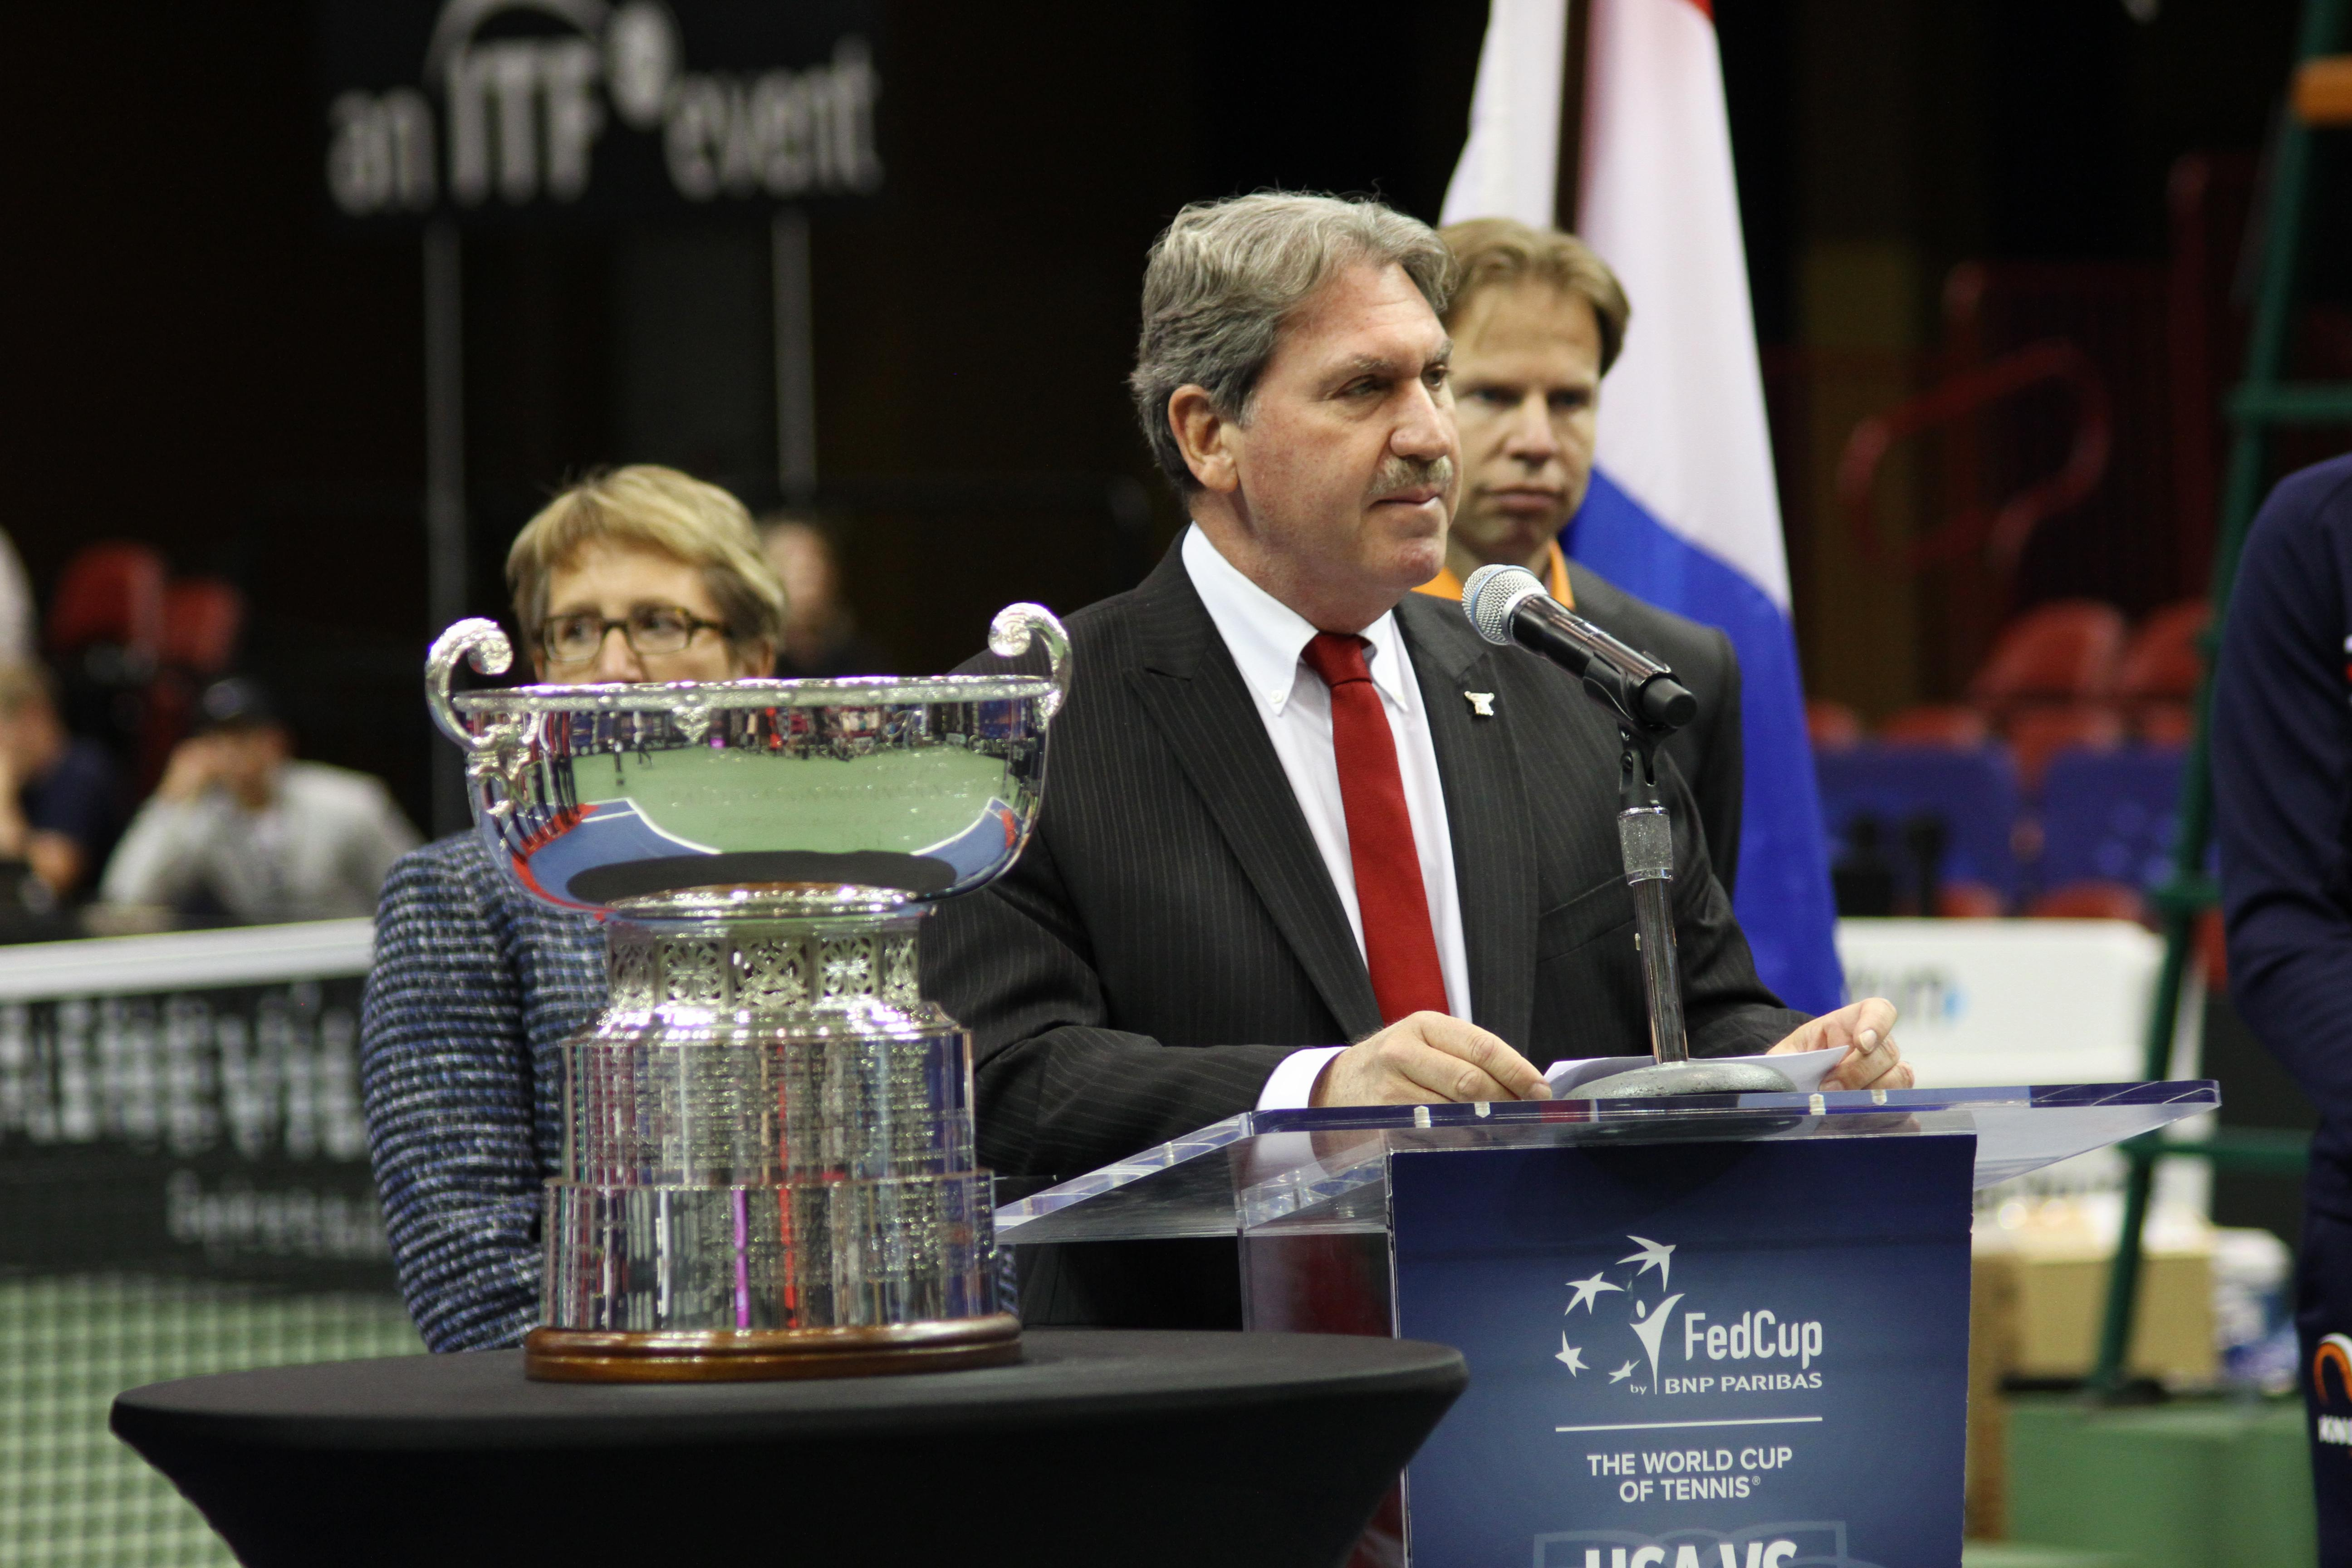 Team USA and Team Netherlands attend a draw ceremony on Feb. 9, 2018, to determine the schedule for the Fed Cup. The event was held at the US Cellular Center in Asheville, North Carolina. (Photo credit: Kelly Doty)